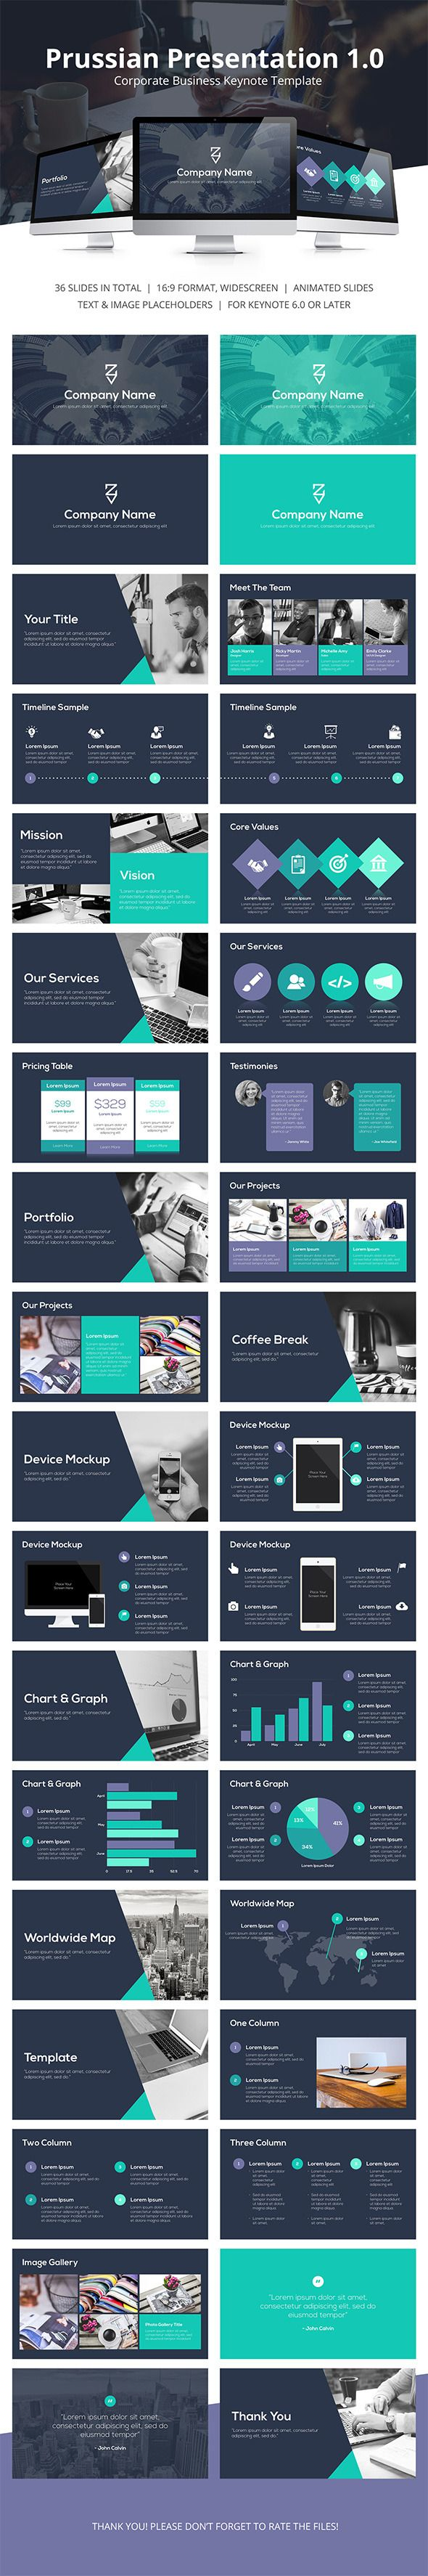 237 best Presentation Design images on Pinterest | Graphics, Design ...